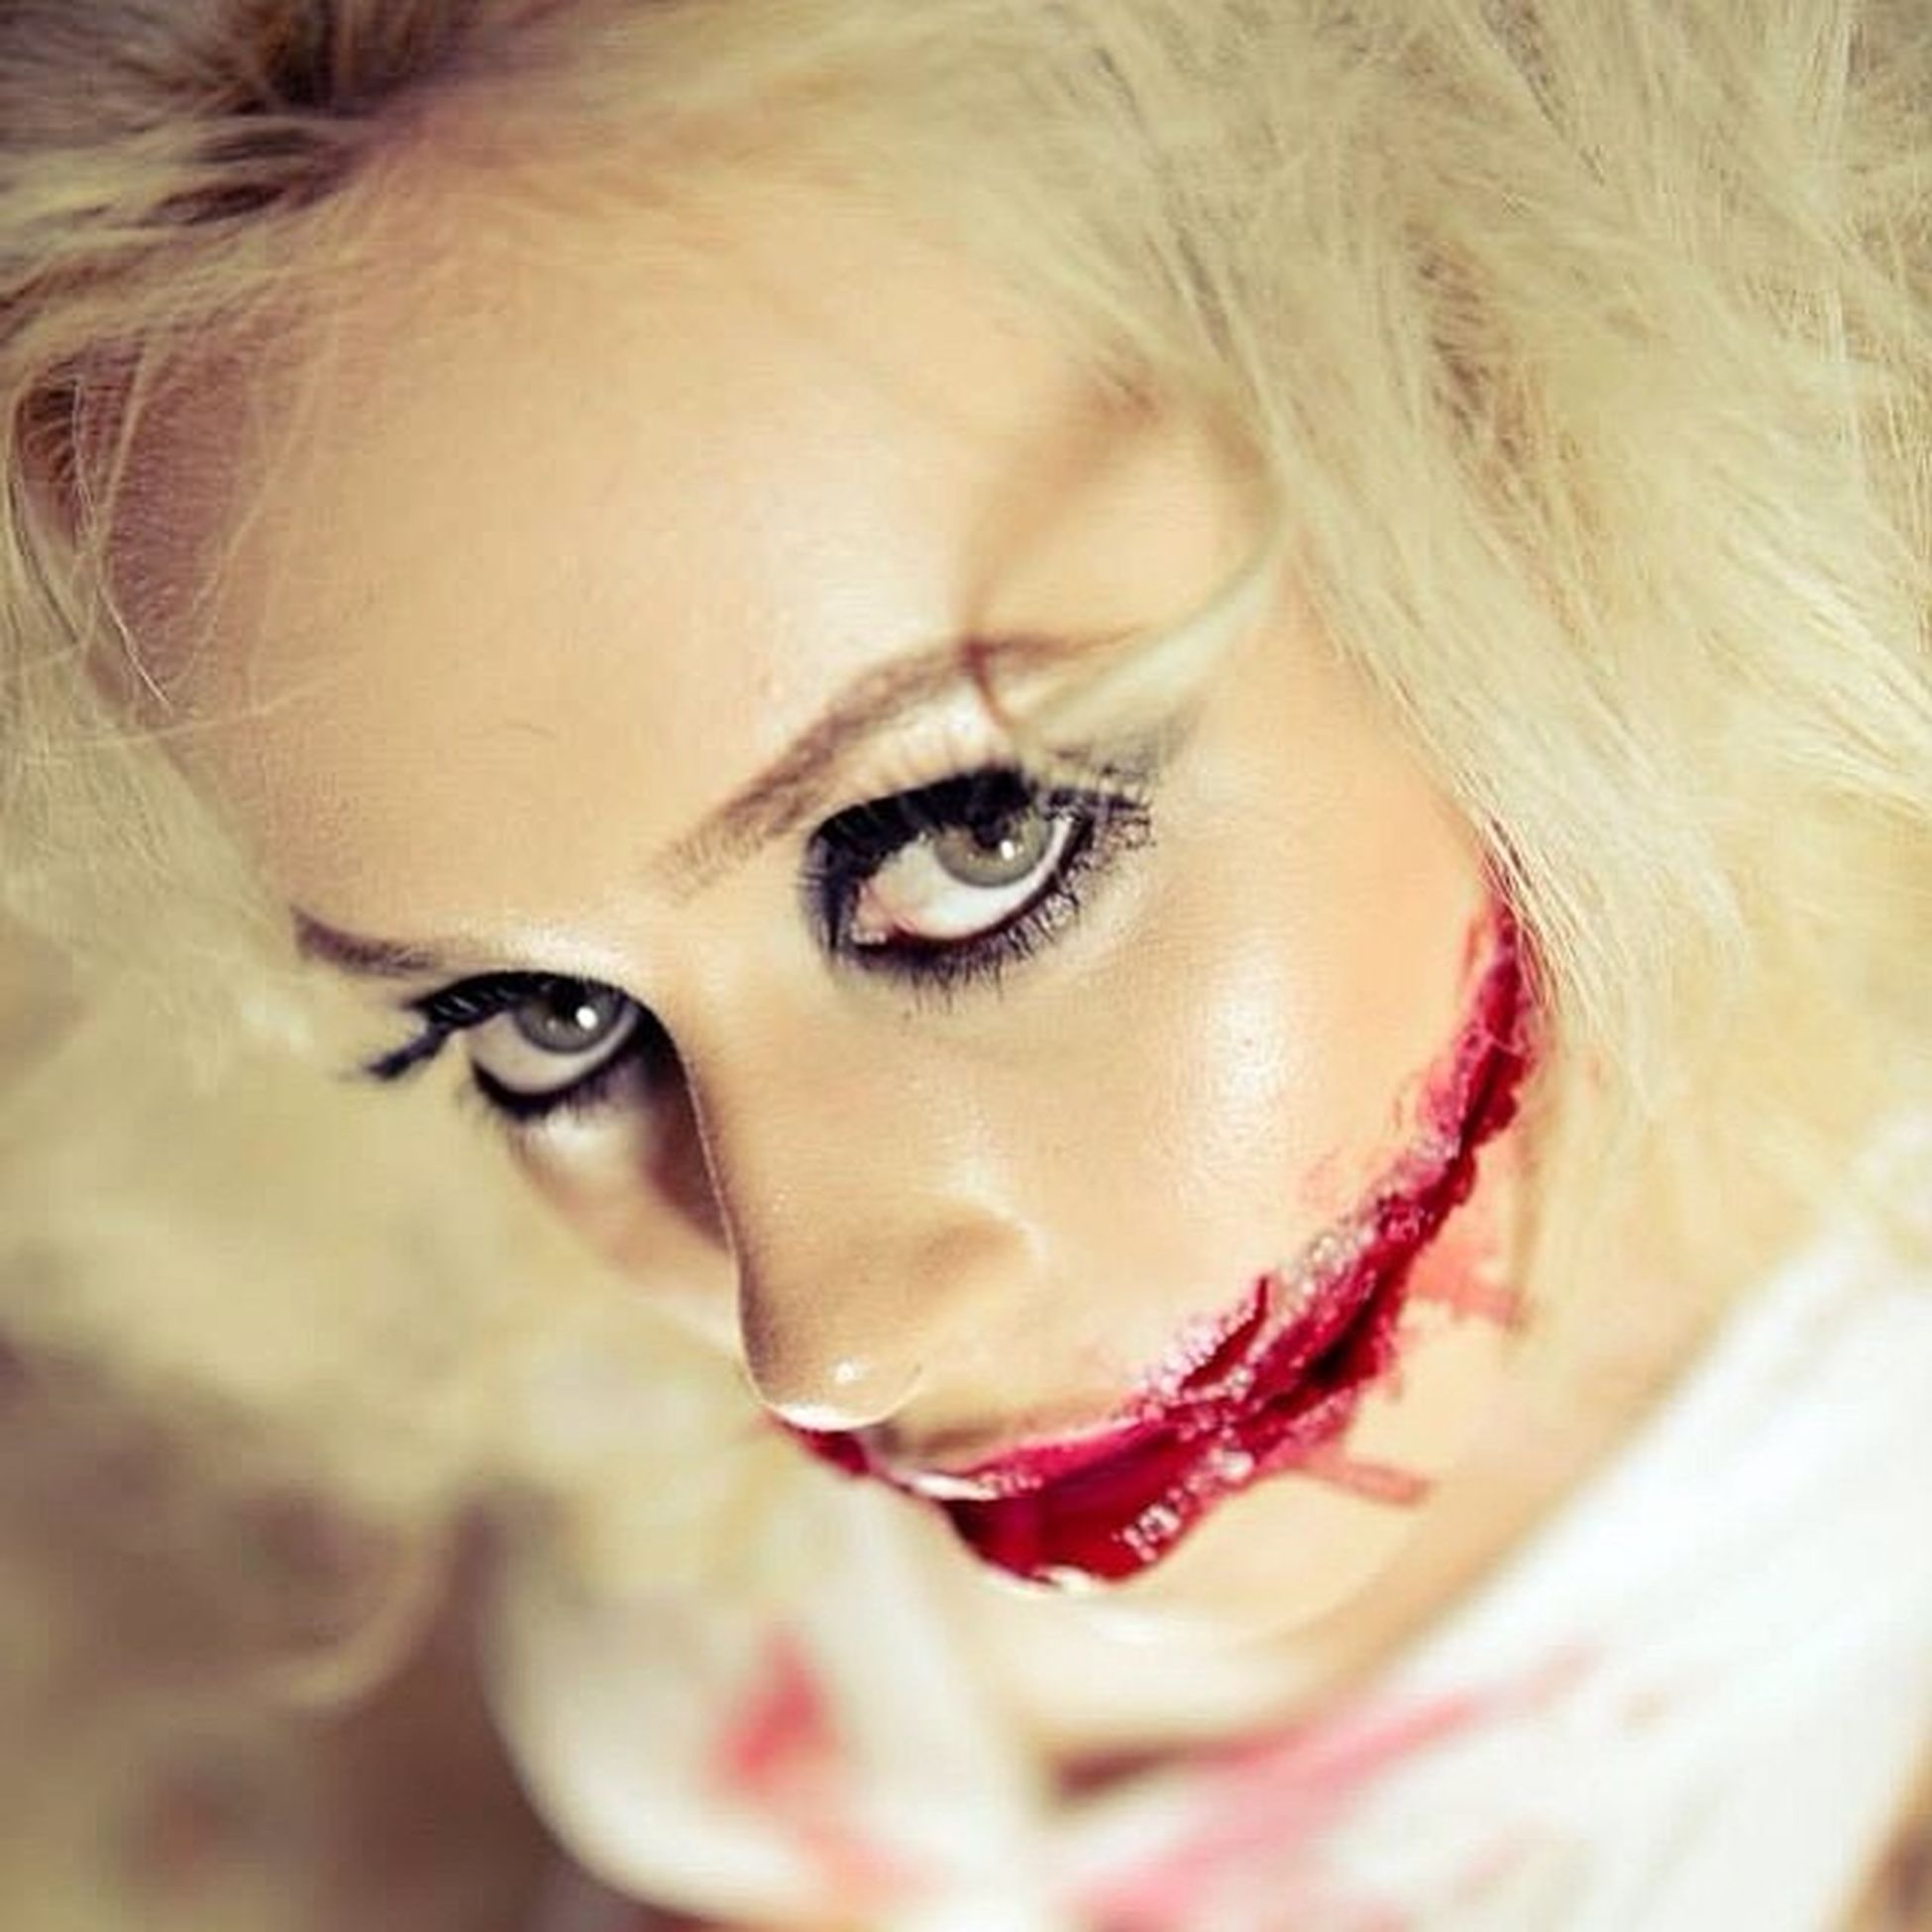 Houseofphoenixeleven Zombie Shoot with @xxba bydoll16xx Kelseymctainsh Say Cheeeez Smile Blood Beautiful Gore